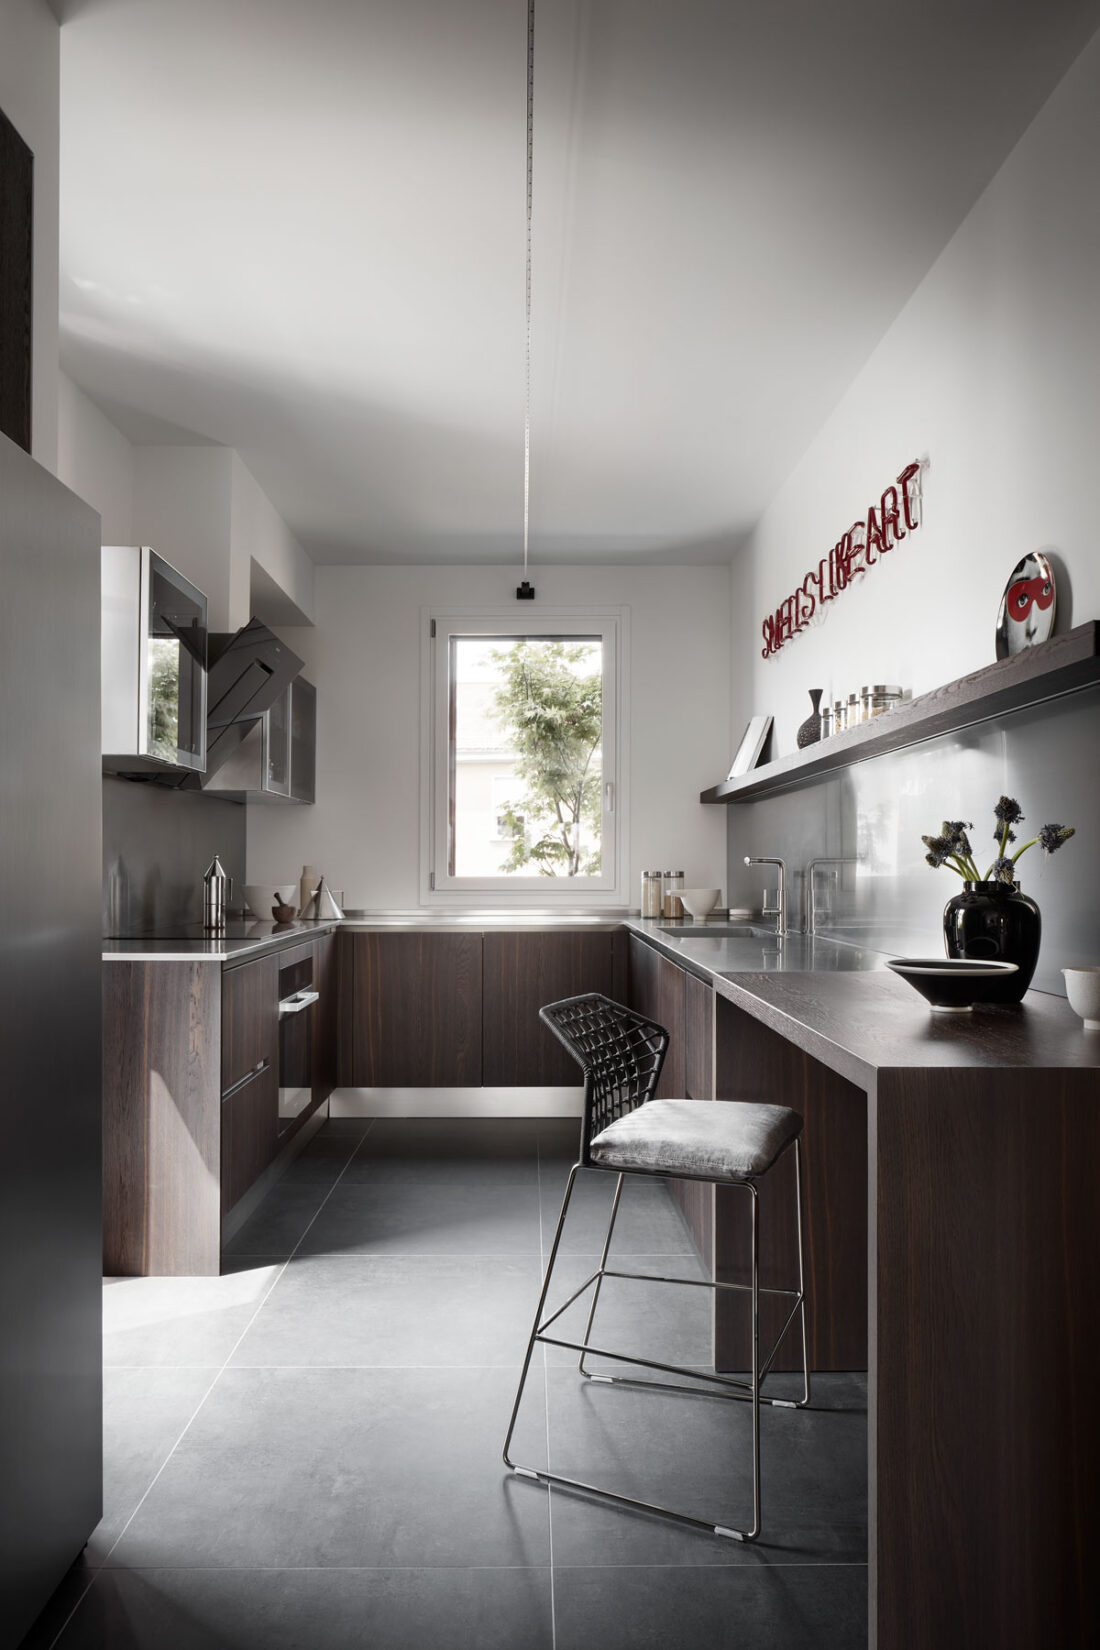 modern tailor-made kitchen made in stainless steel and dark wood with luxury appliances